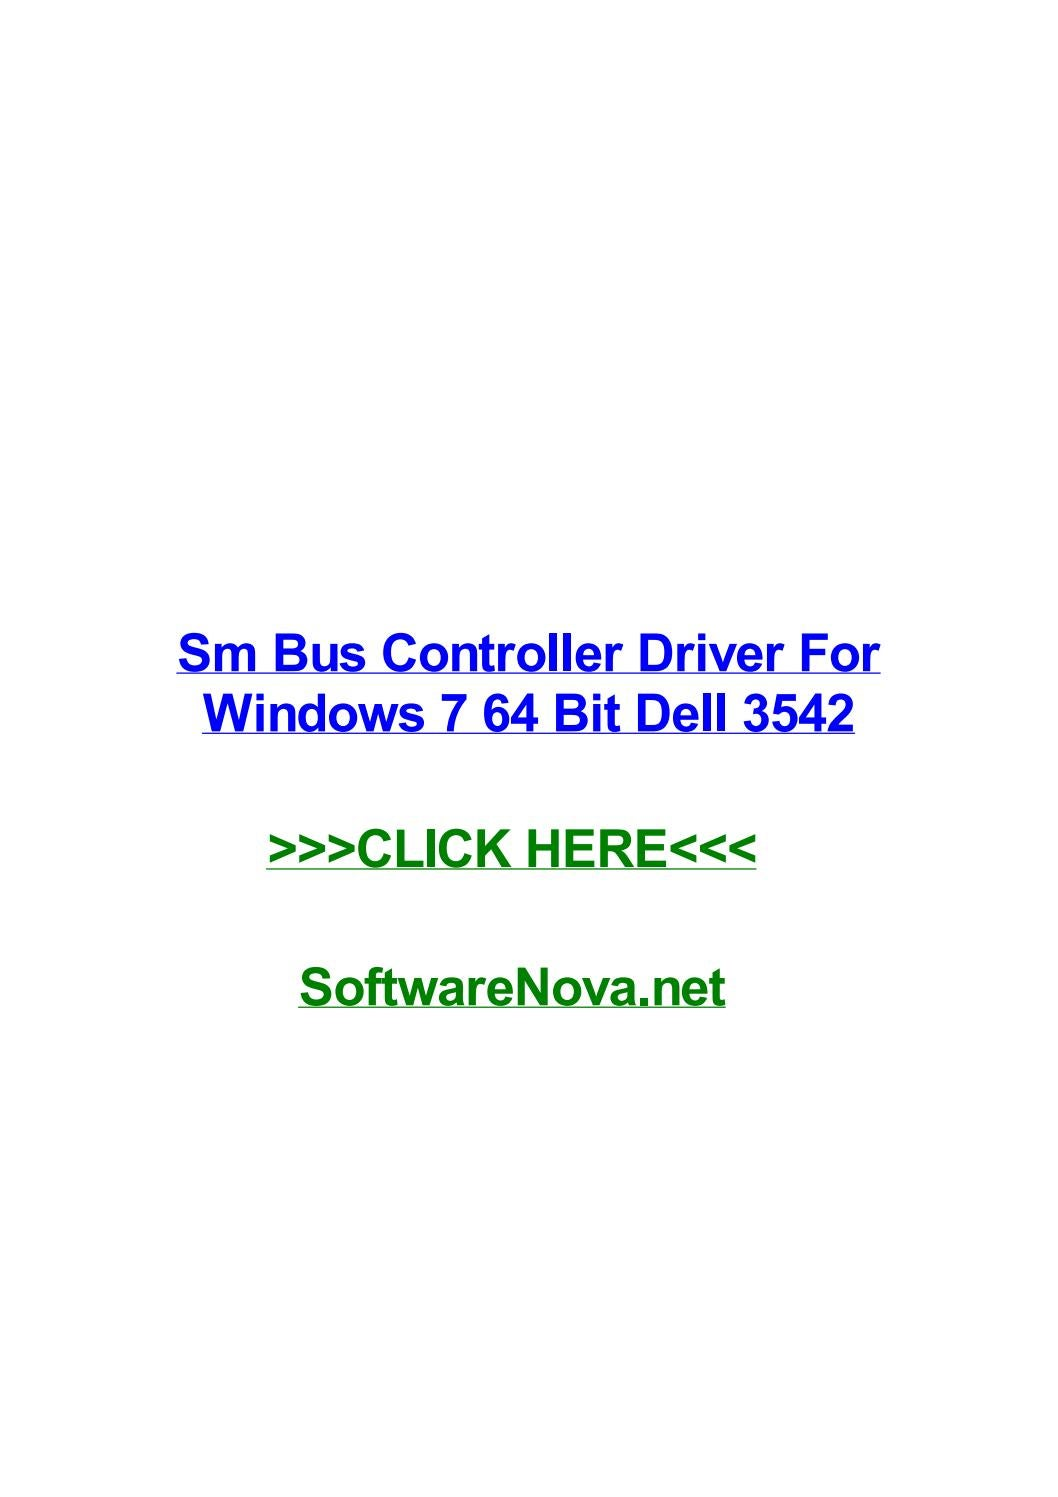 root uim_bus driver